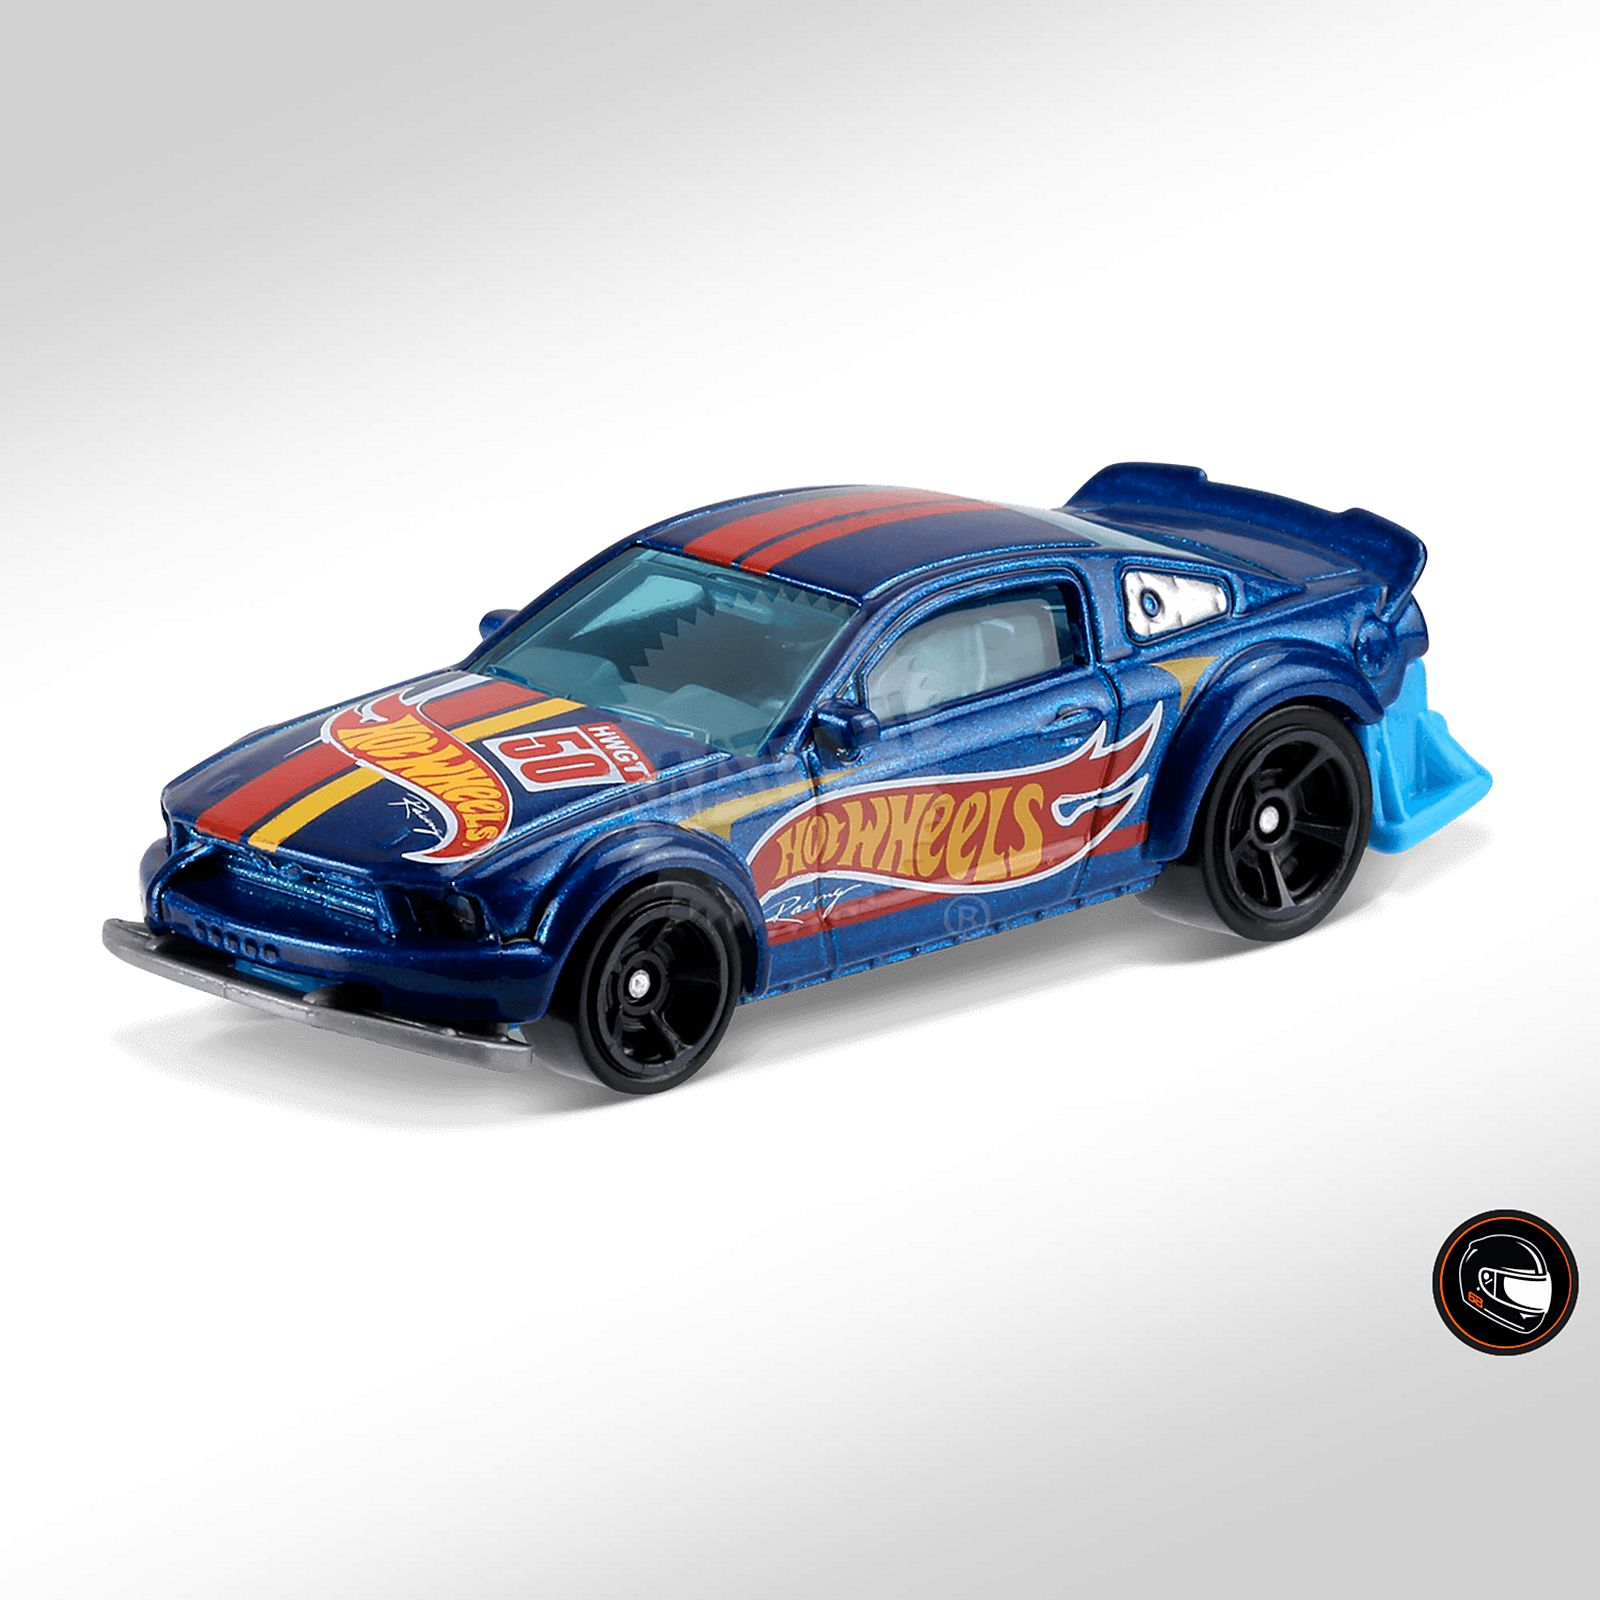 05 Ford Mustang - HW Race Team | DTY65 | Hot Wheels Collectors